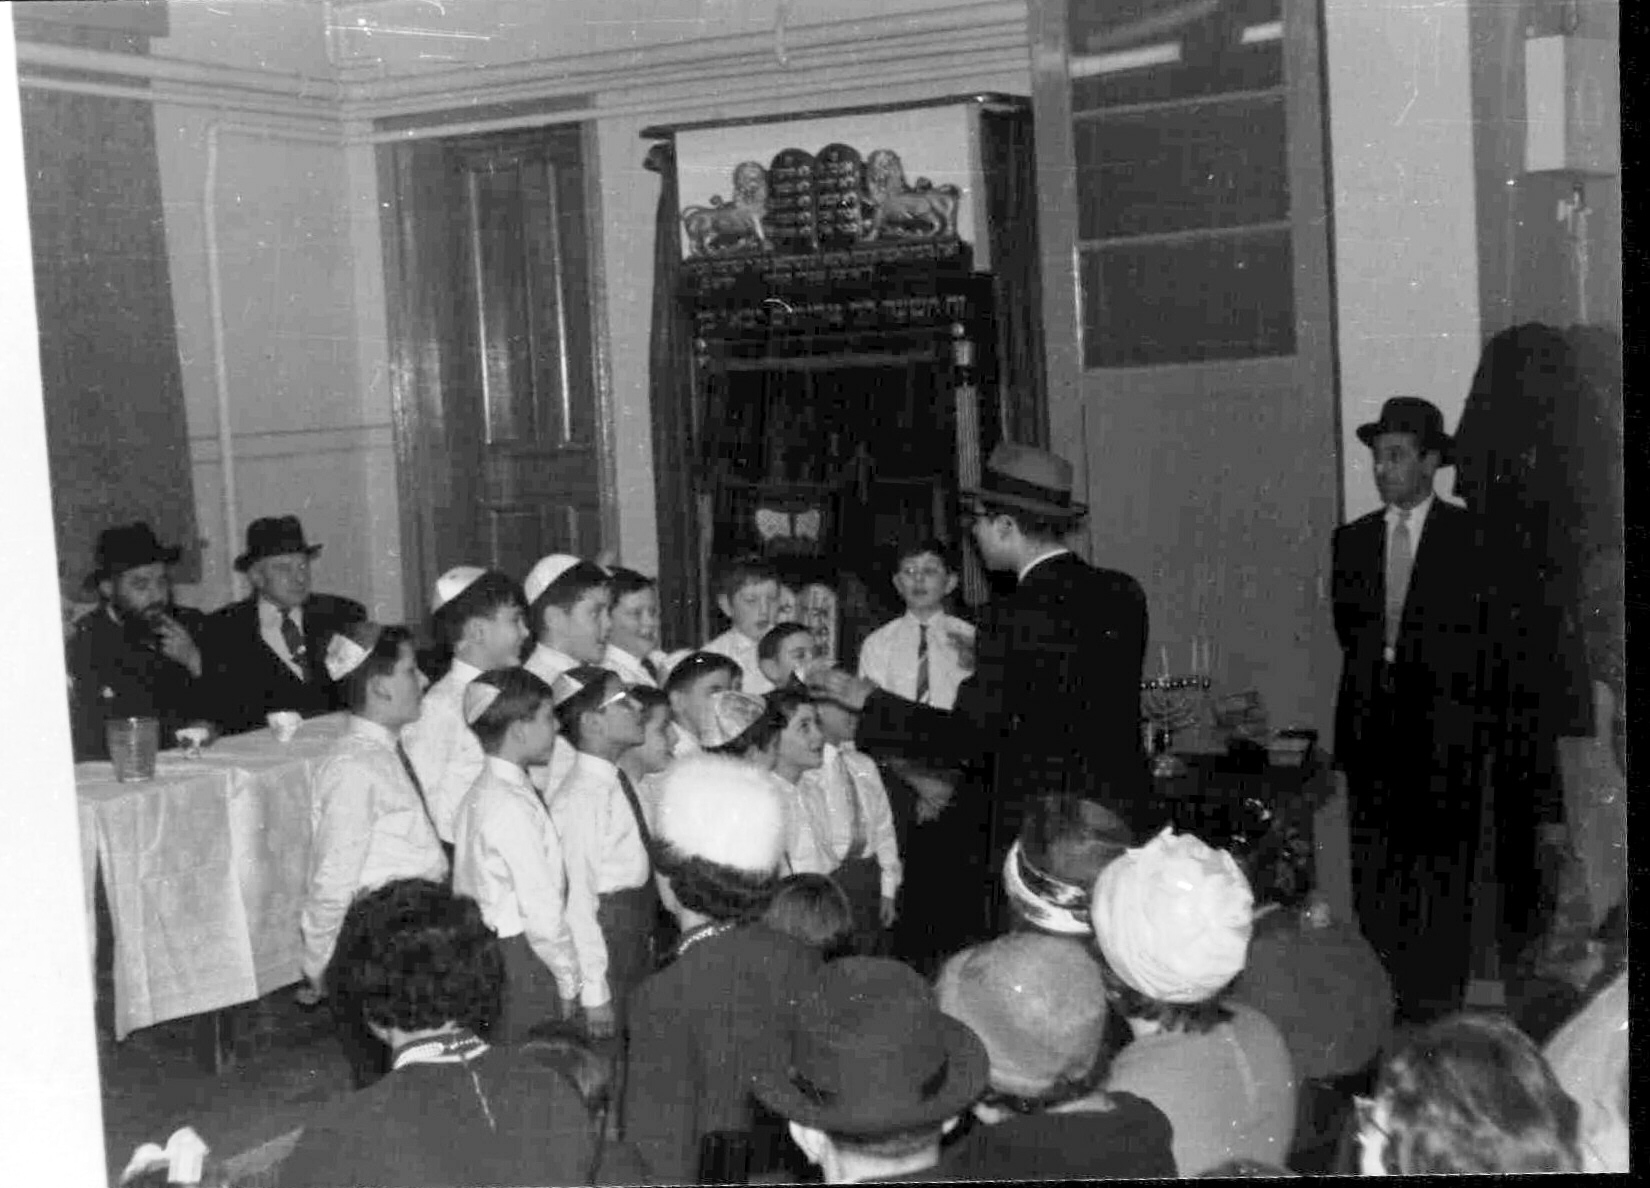 Rabbi S Halstuck of Commercial Road Great synagogue listening to the synagogue's boys choir, early 1950s